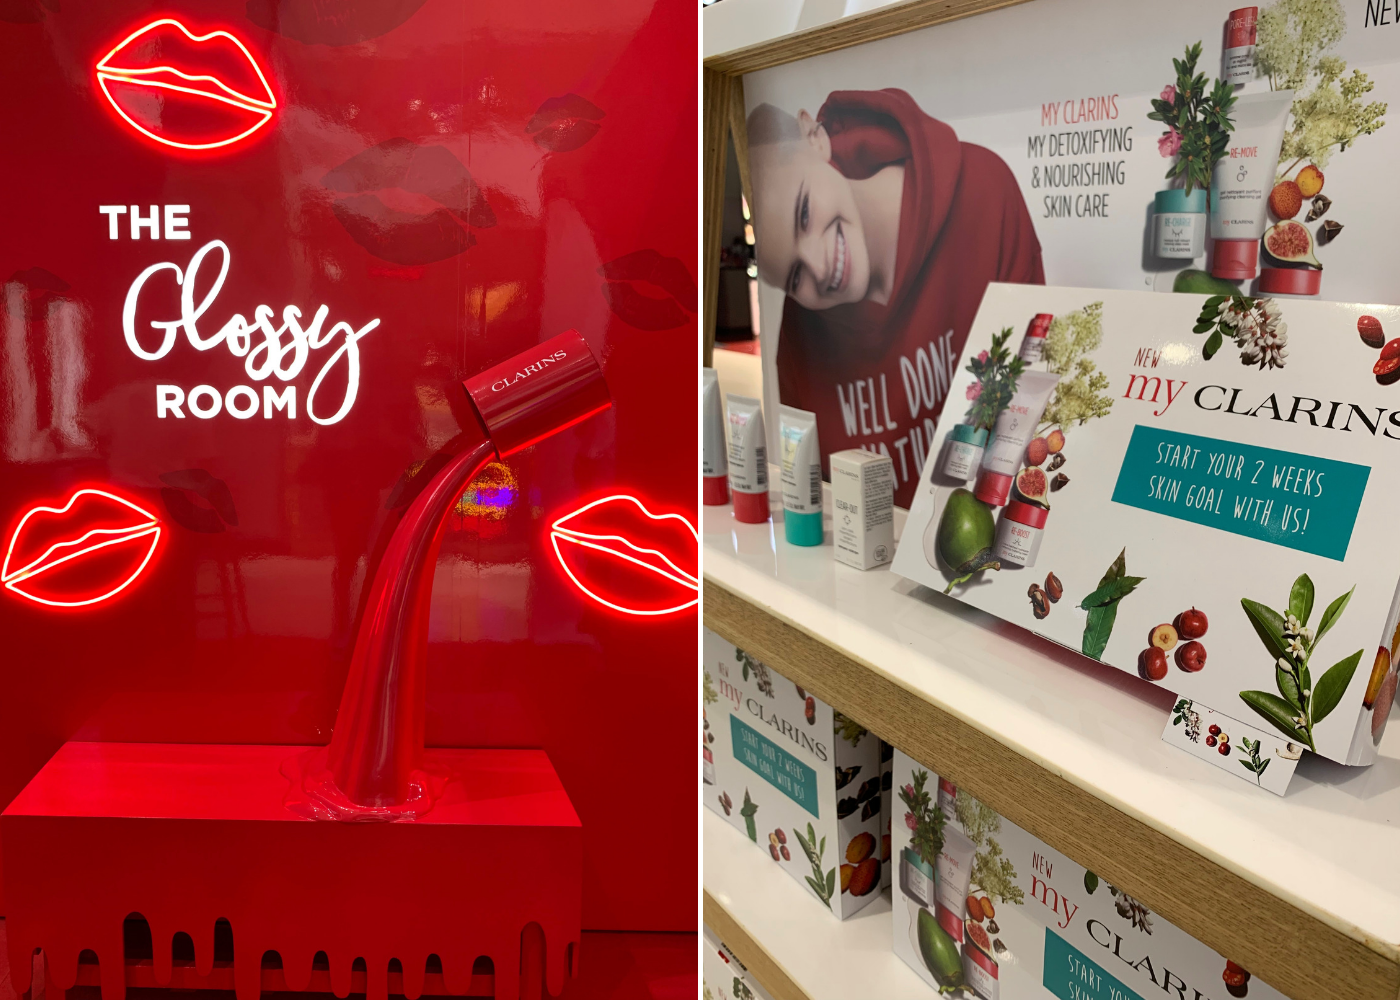 Clarins pop-up at Plaza Singapura | Things to do in Singapore this August 2019